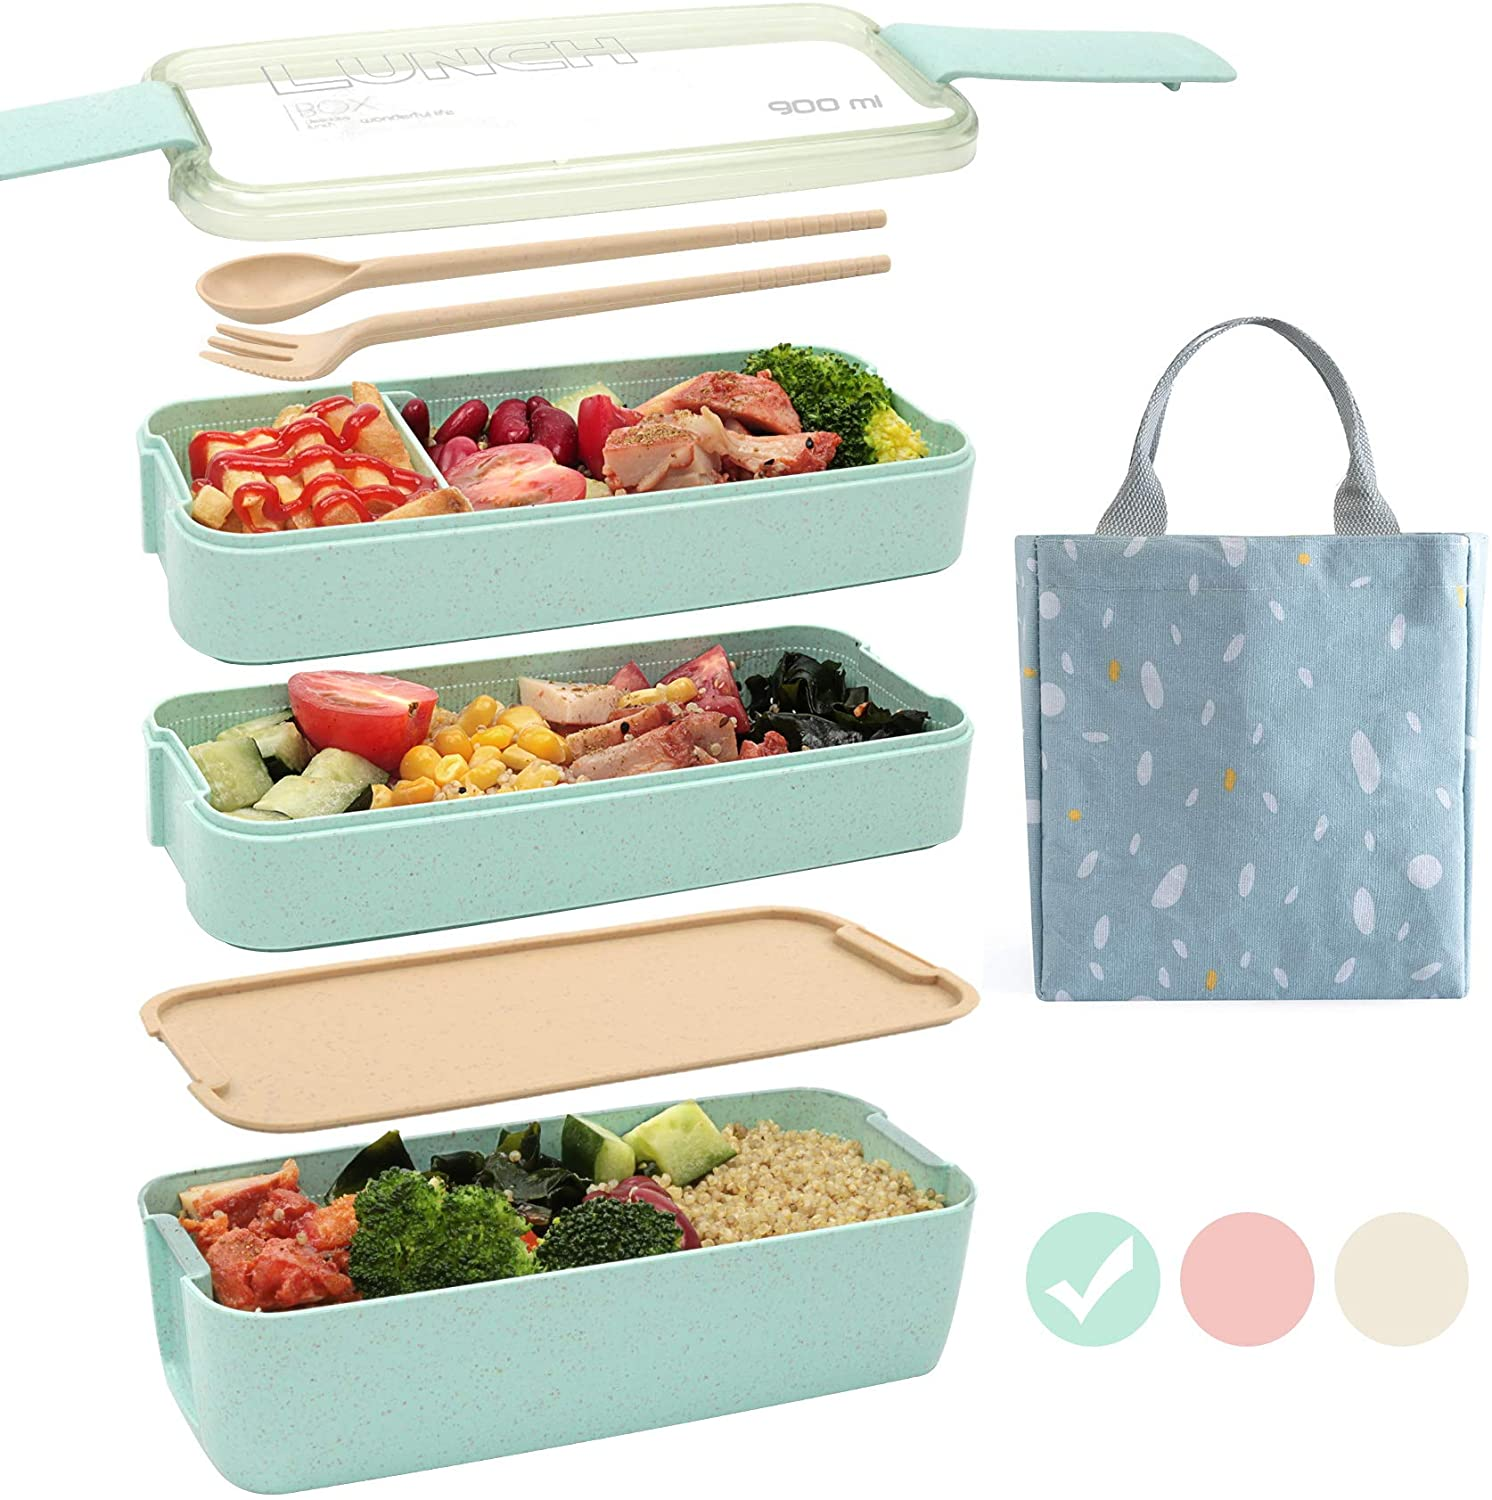 Review of Ozazuco Bento Box Japanese Lunch Box,3-In-1 Compartment